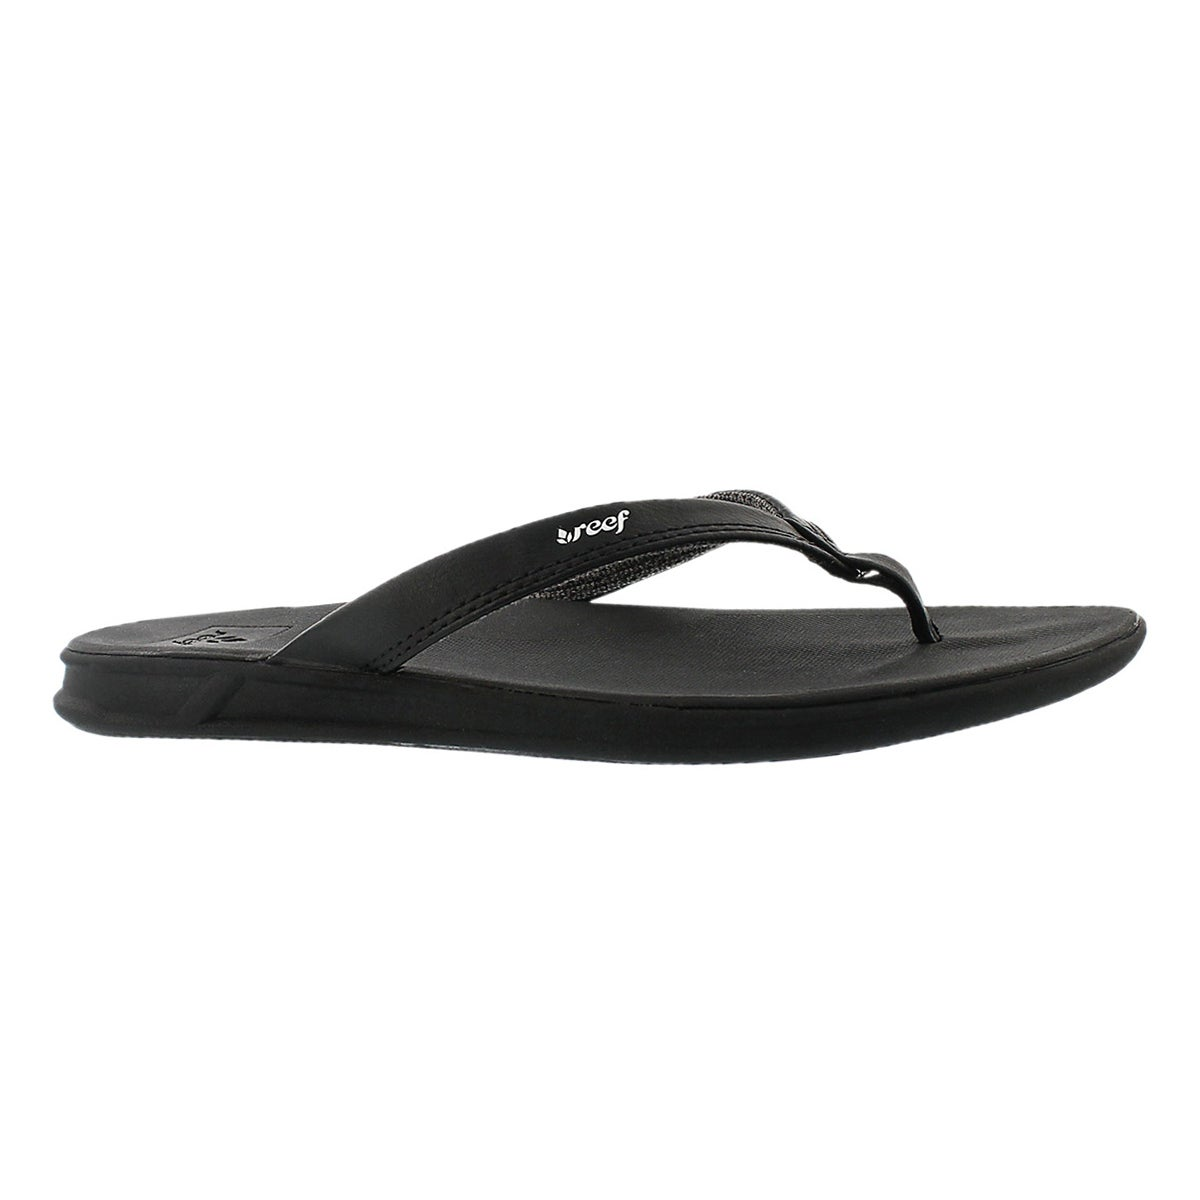 Women's REEF ROVER CATCH black thong sandals